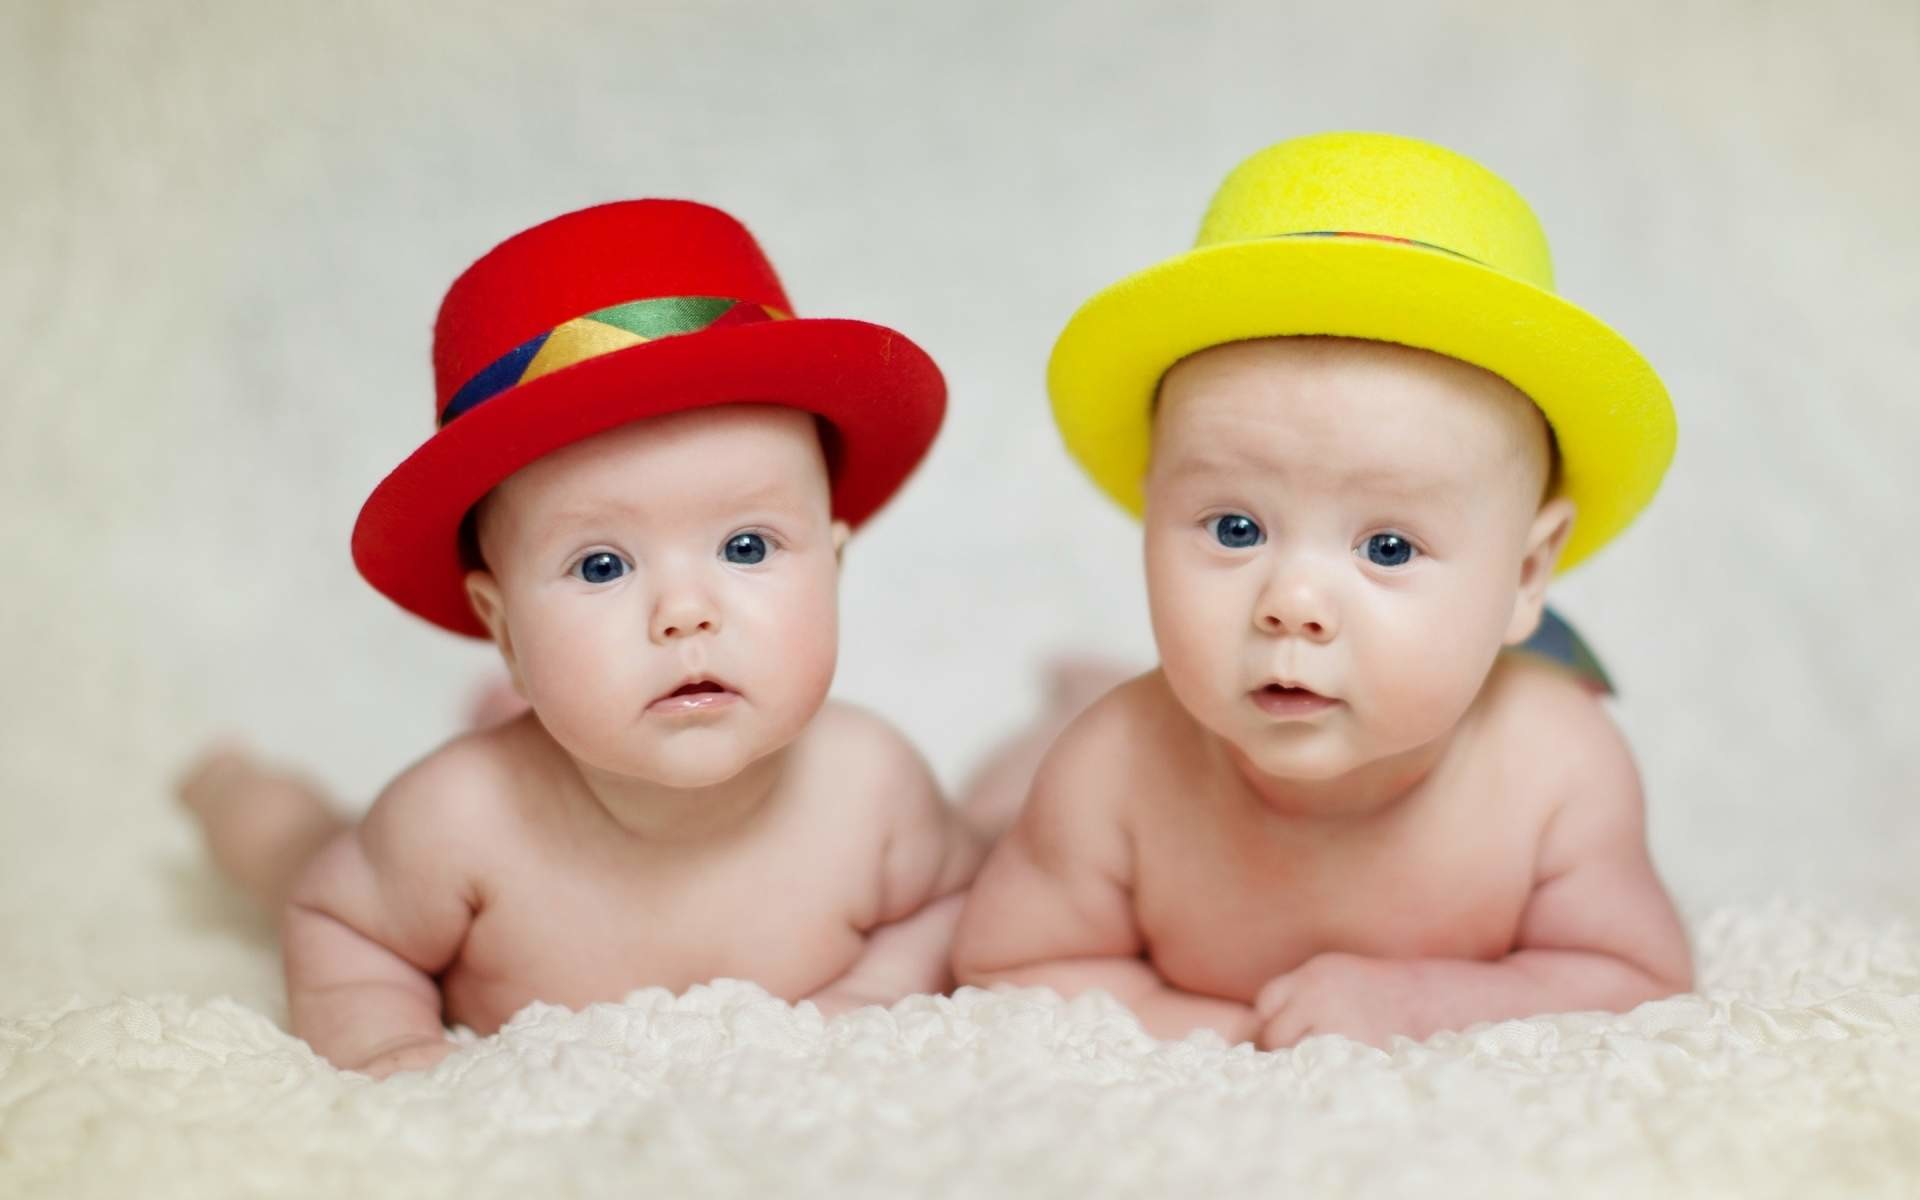 1920x1200 ... Baby Wallpaper Pictures Of Cute Babies Best Collection